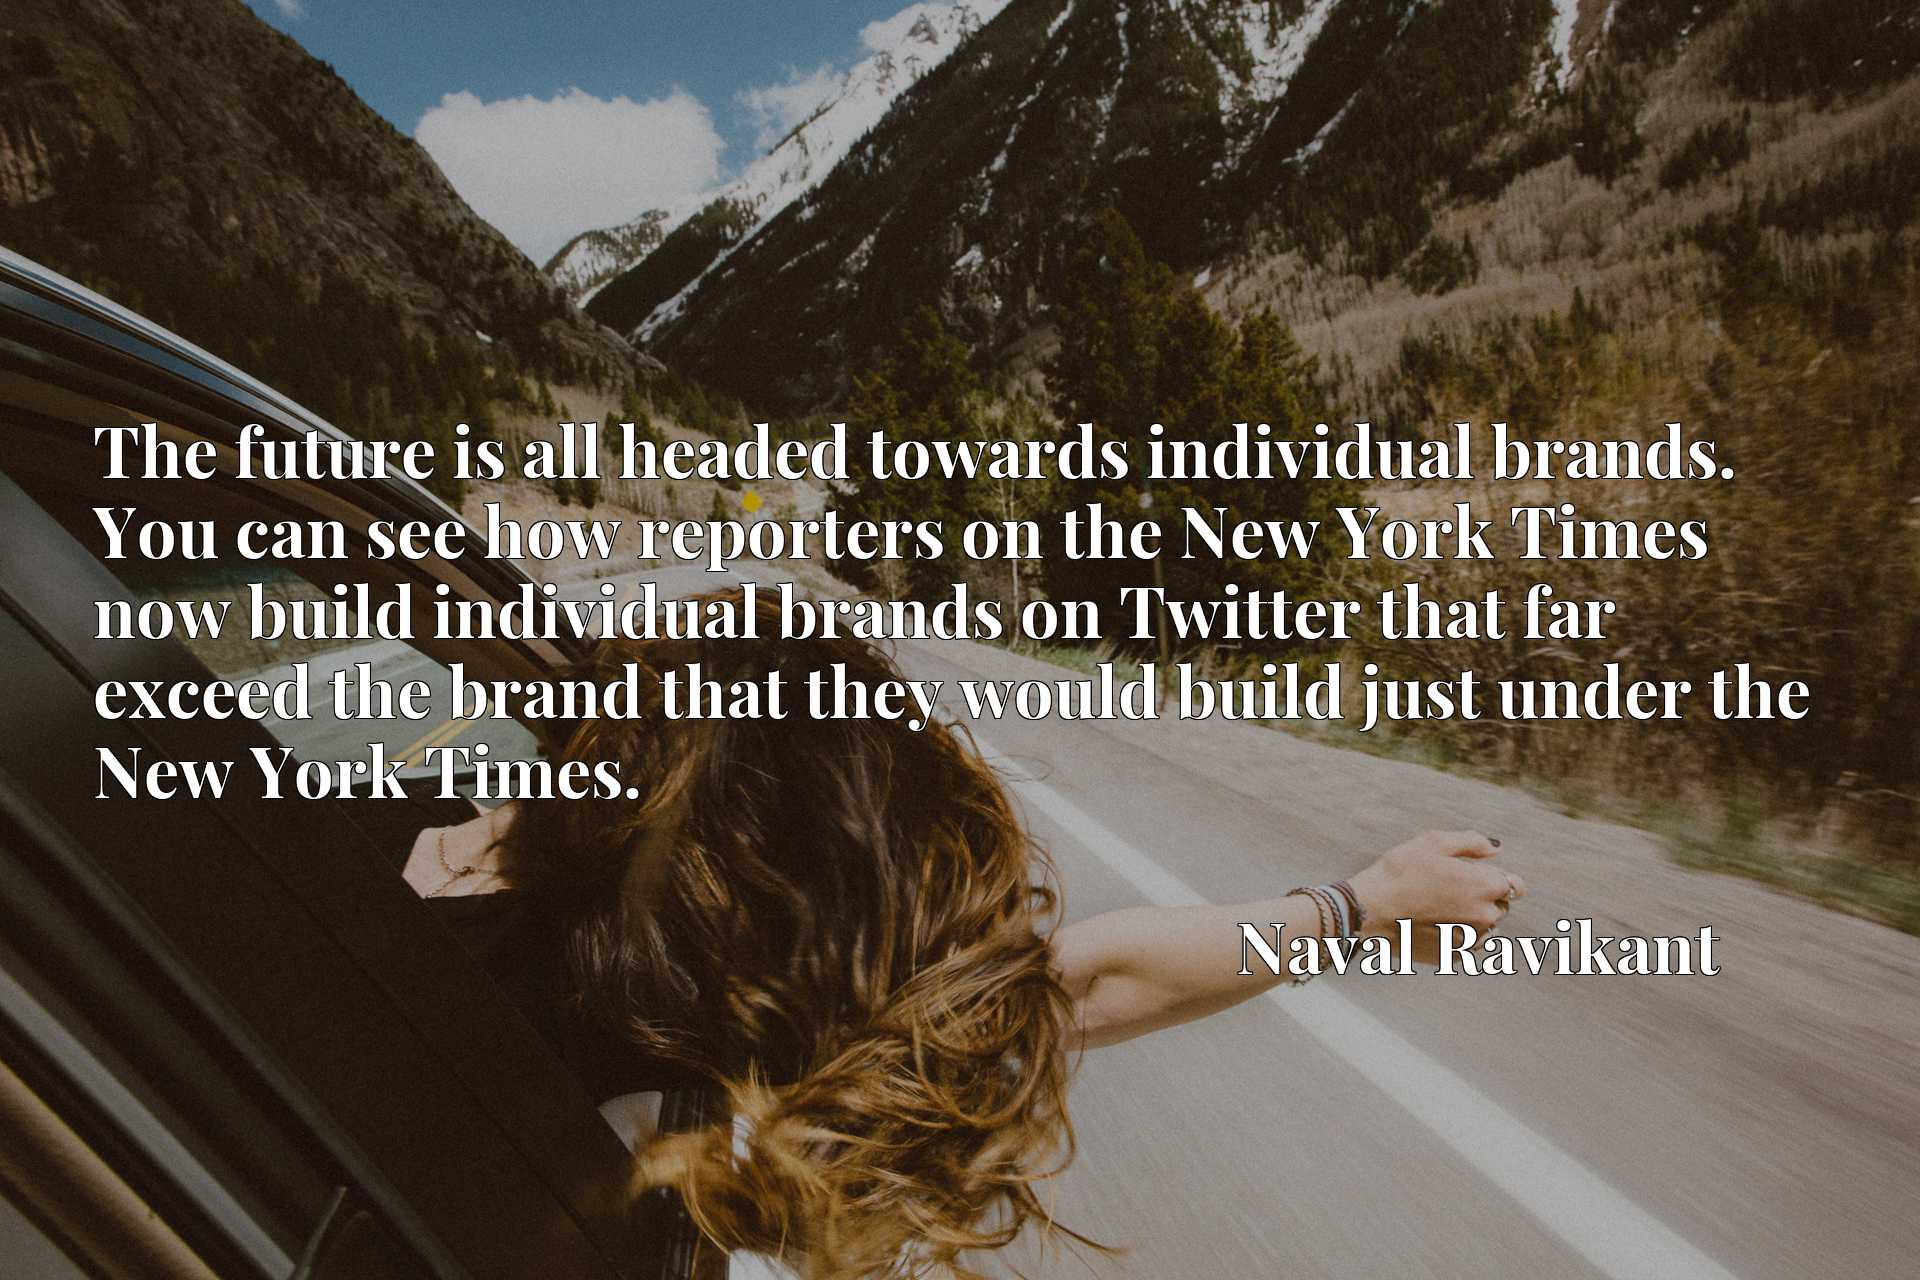 The future is all headed towards individual brands. You can see how reporters on the New York Times now build individual brands on Twitter that far exceed the brand that they would build just under the New York Times.